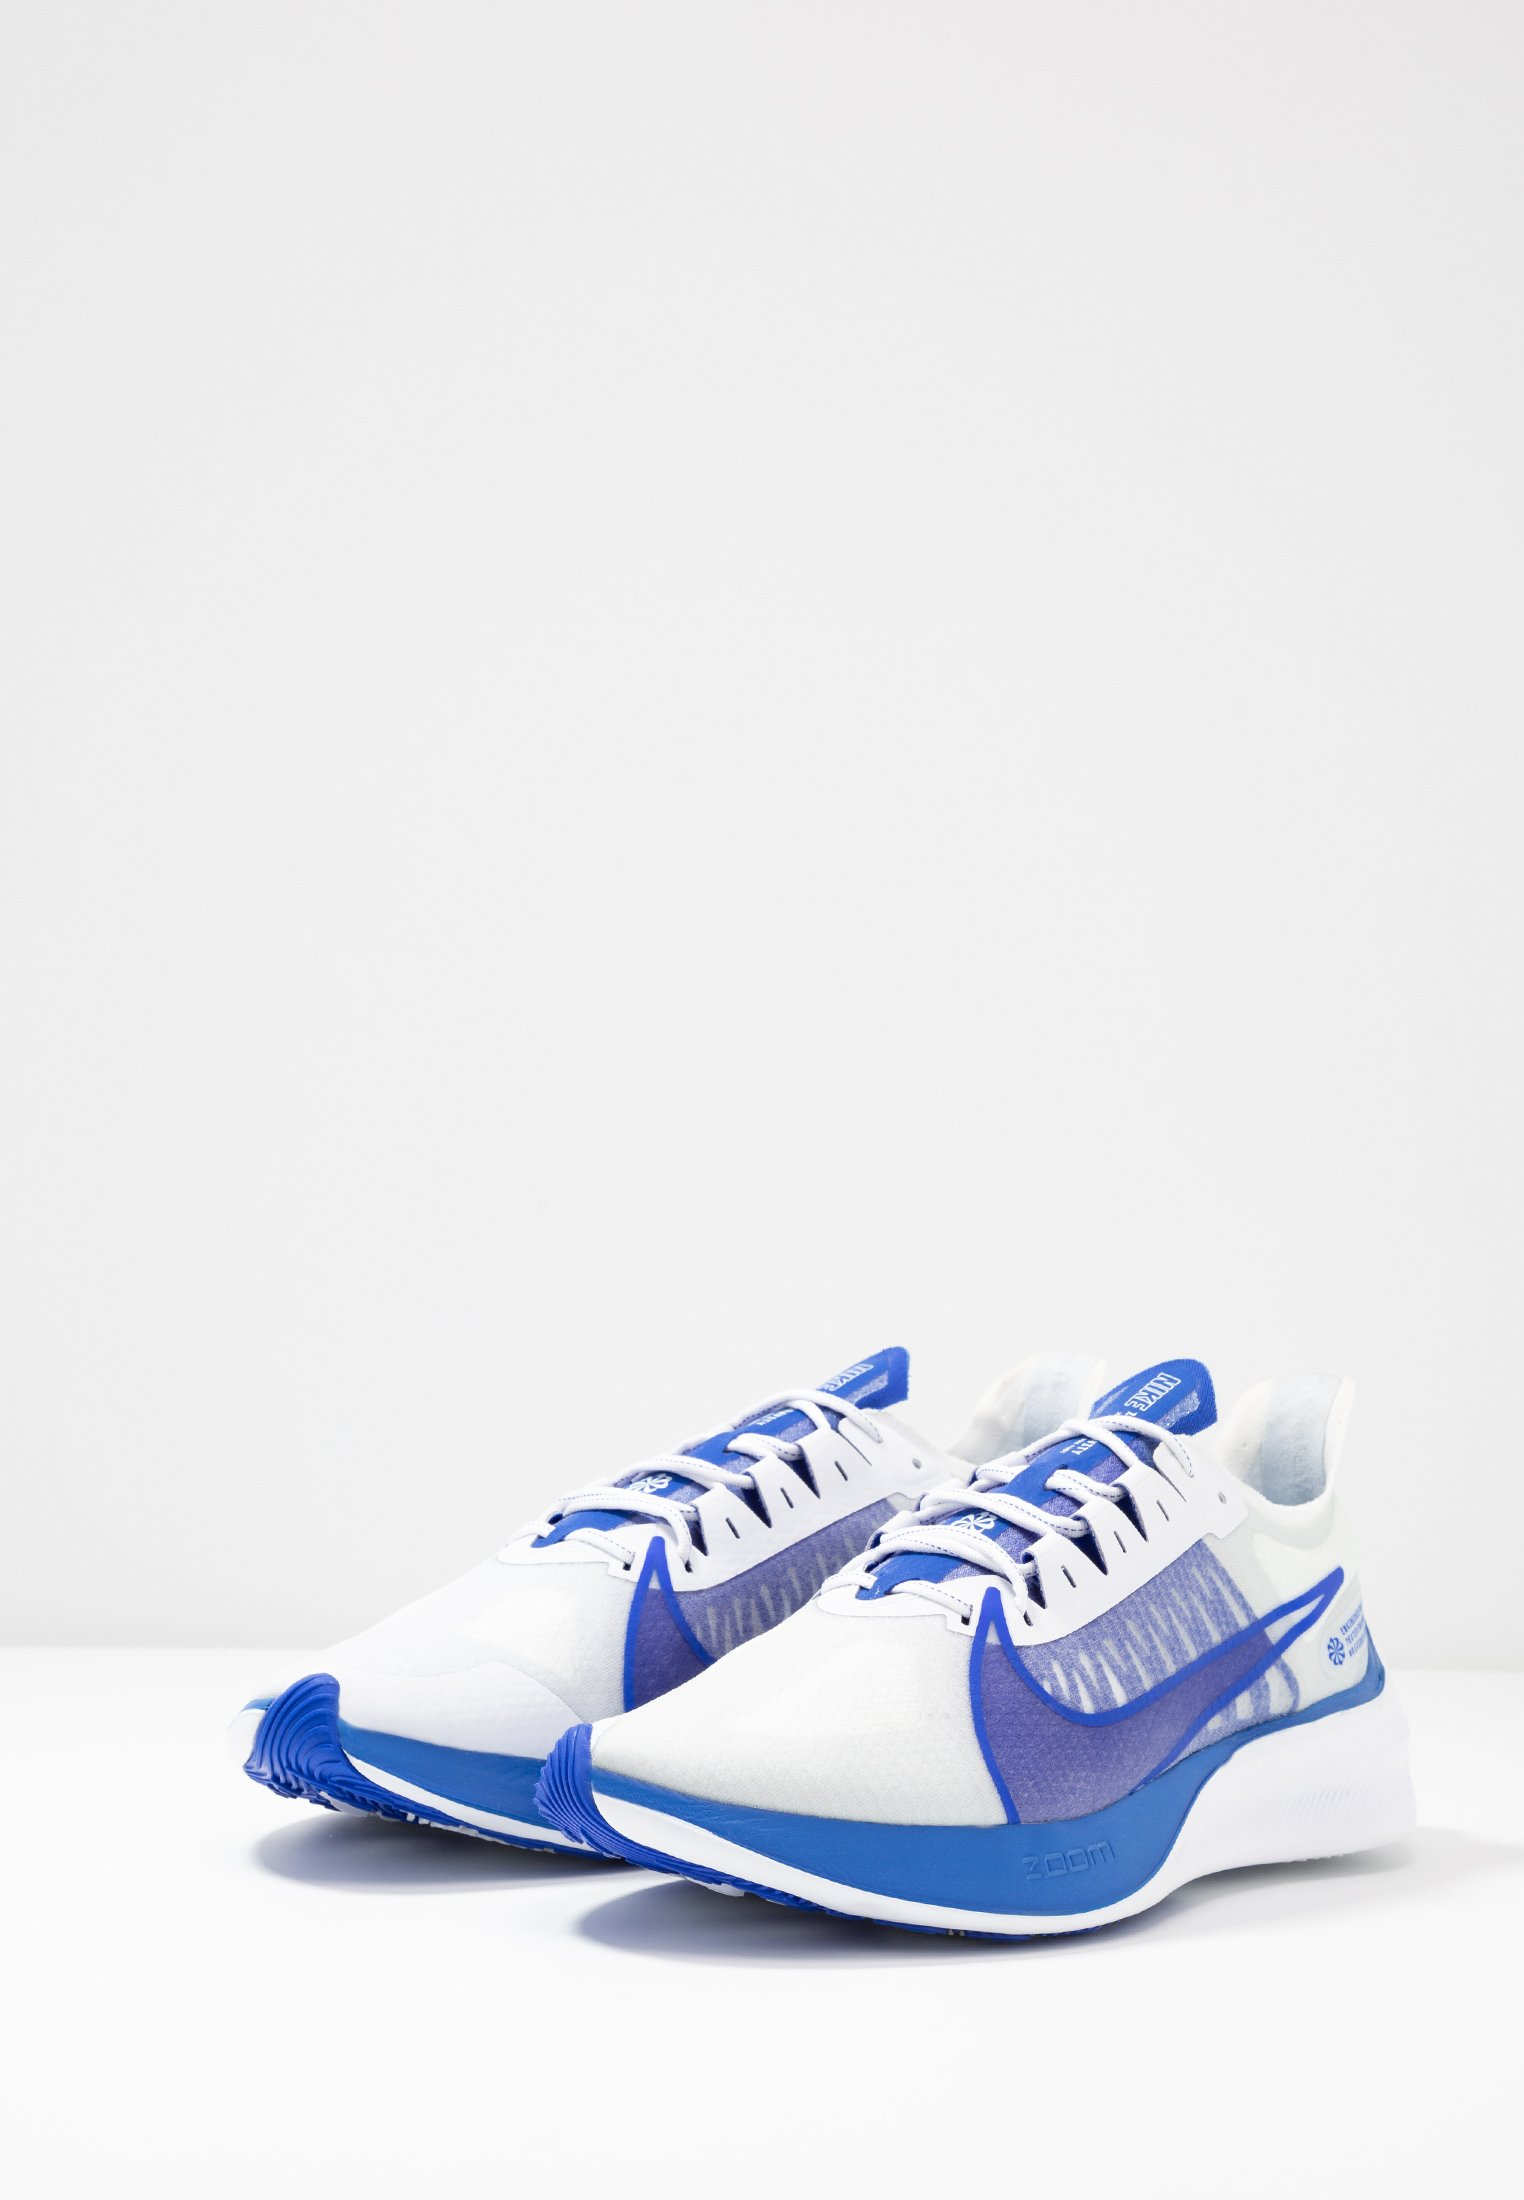 Nike white de clear football racer GRAVITYChaussures grey ZOOM blue racer running Performance blue neutres v0w8NnOm